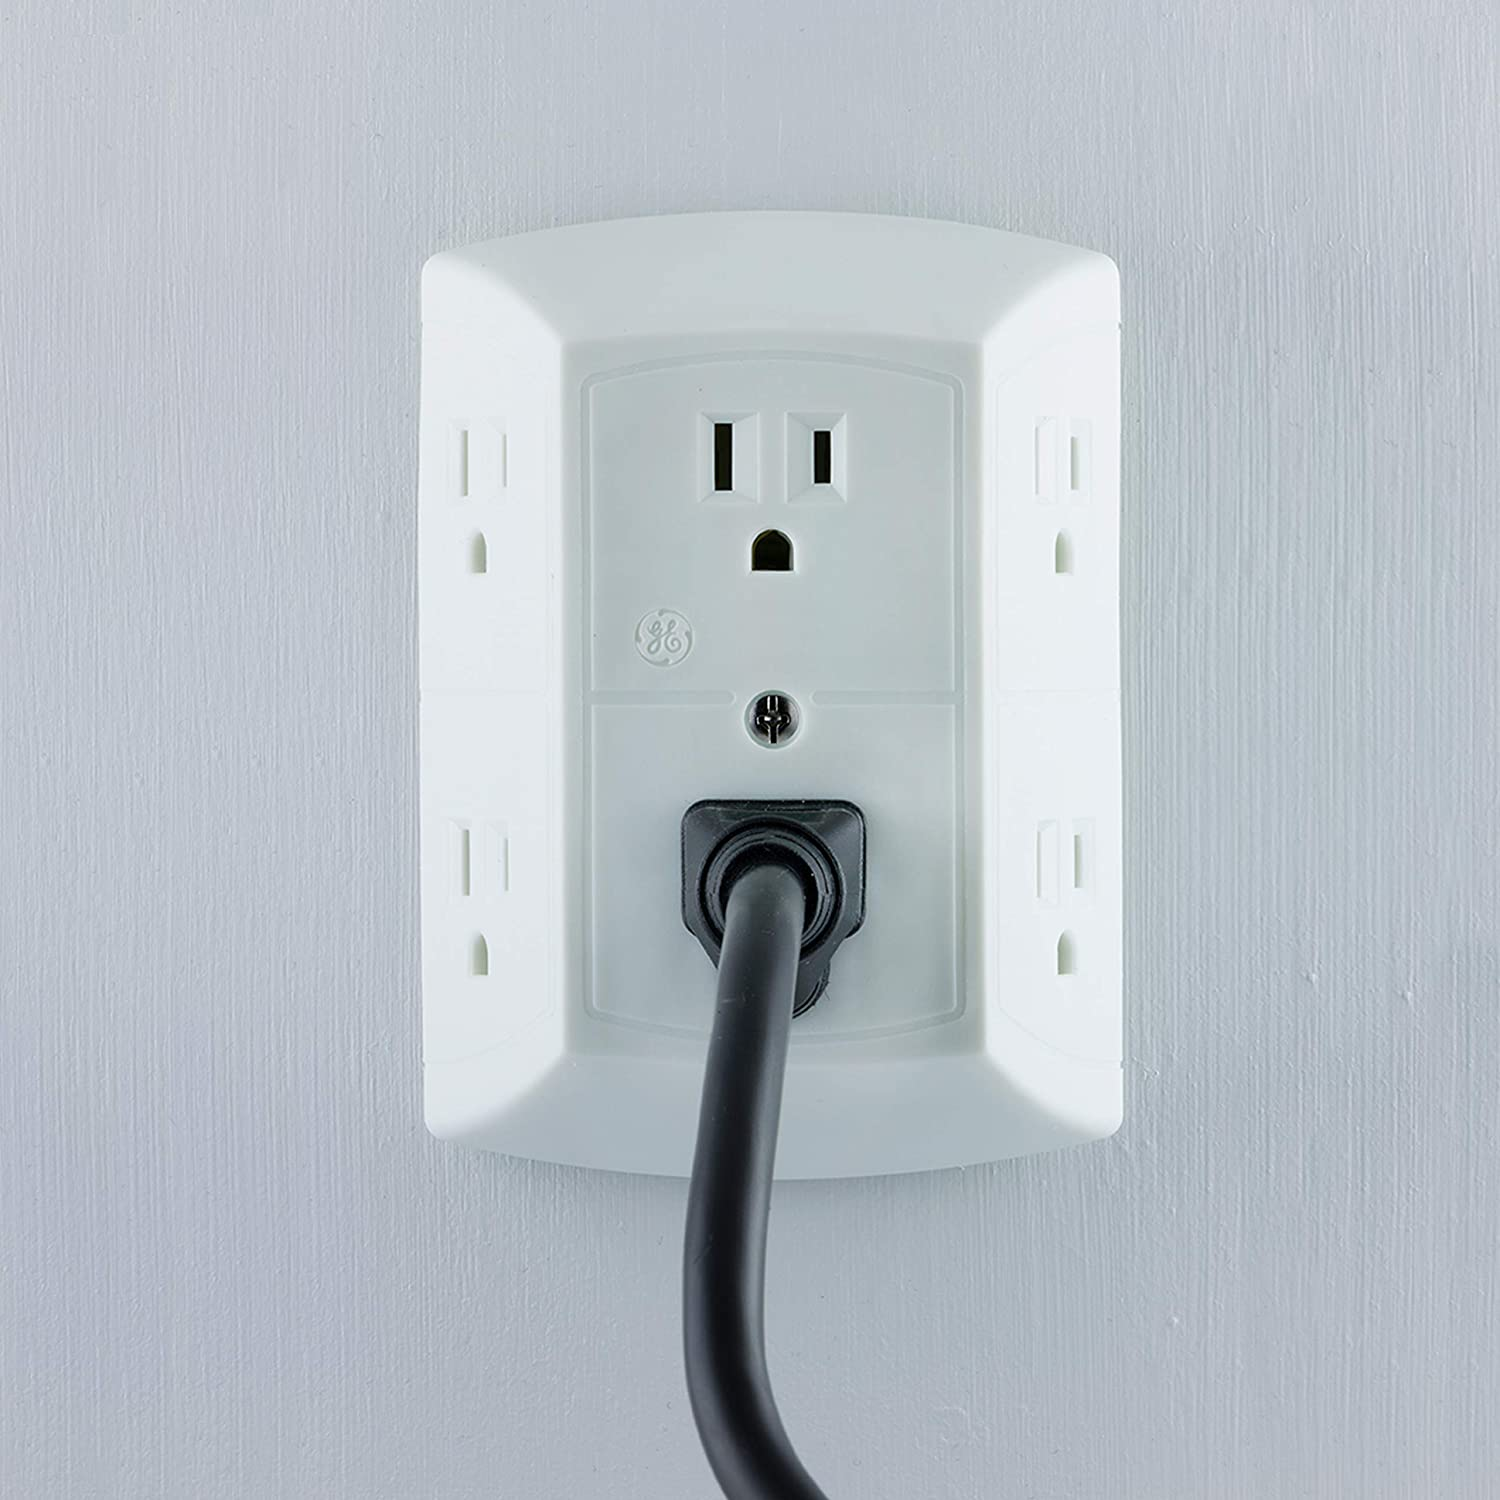 UL Listed Easy-to-Install 40222 2 Pack: GE Grounded 6-Outlet Wall Tap with Adapter Spaced Outlets